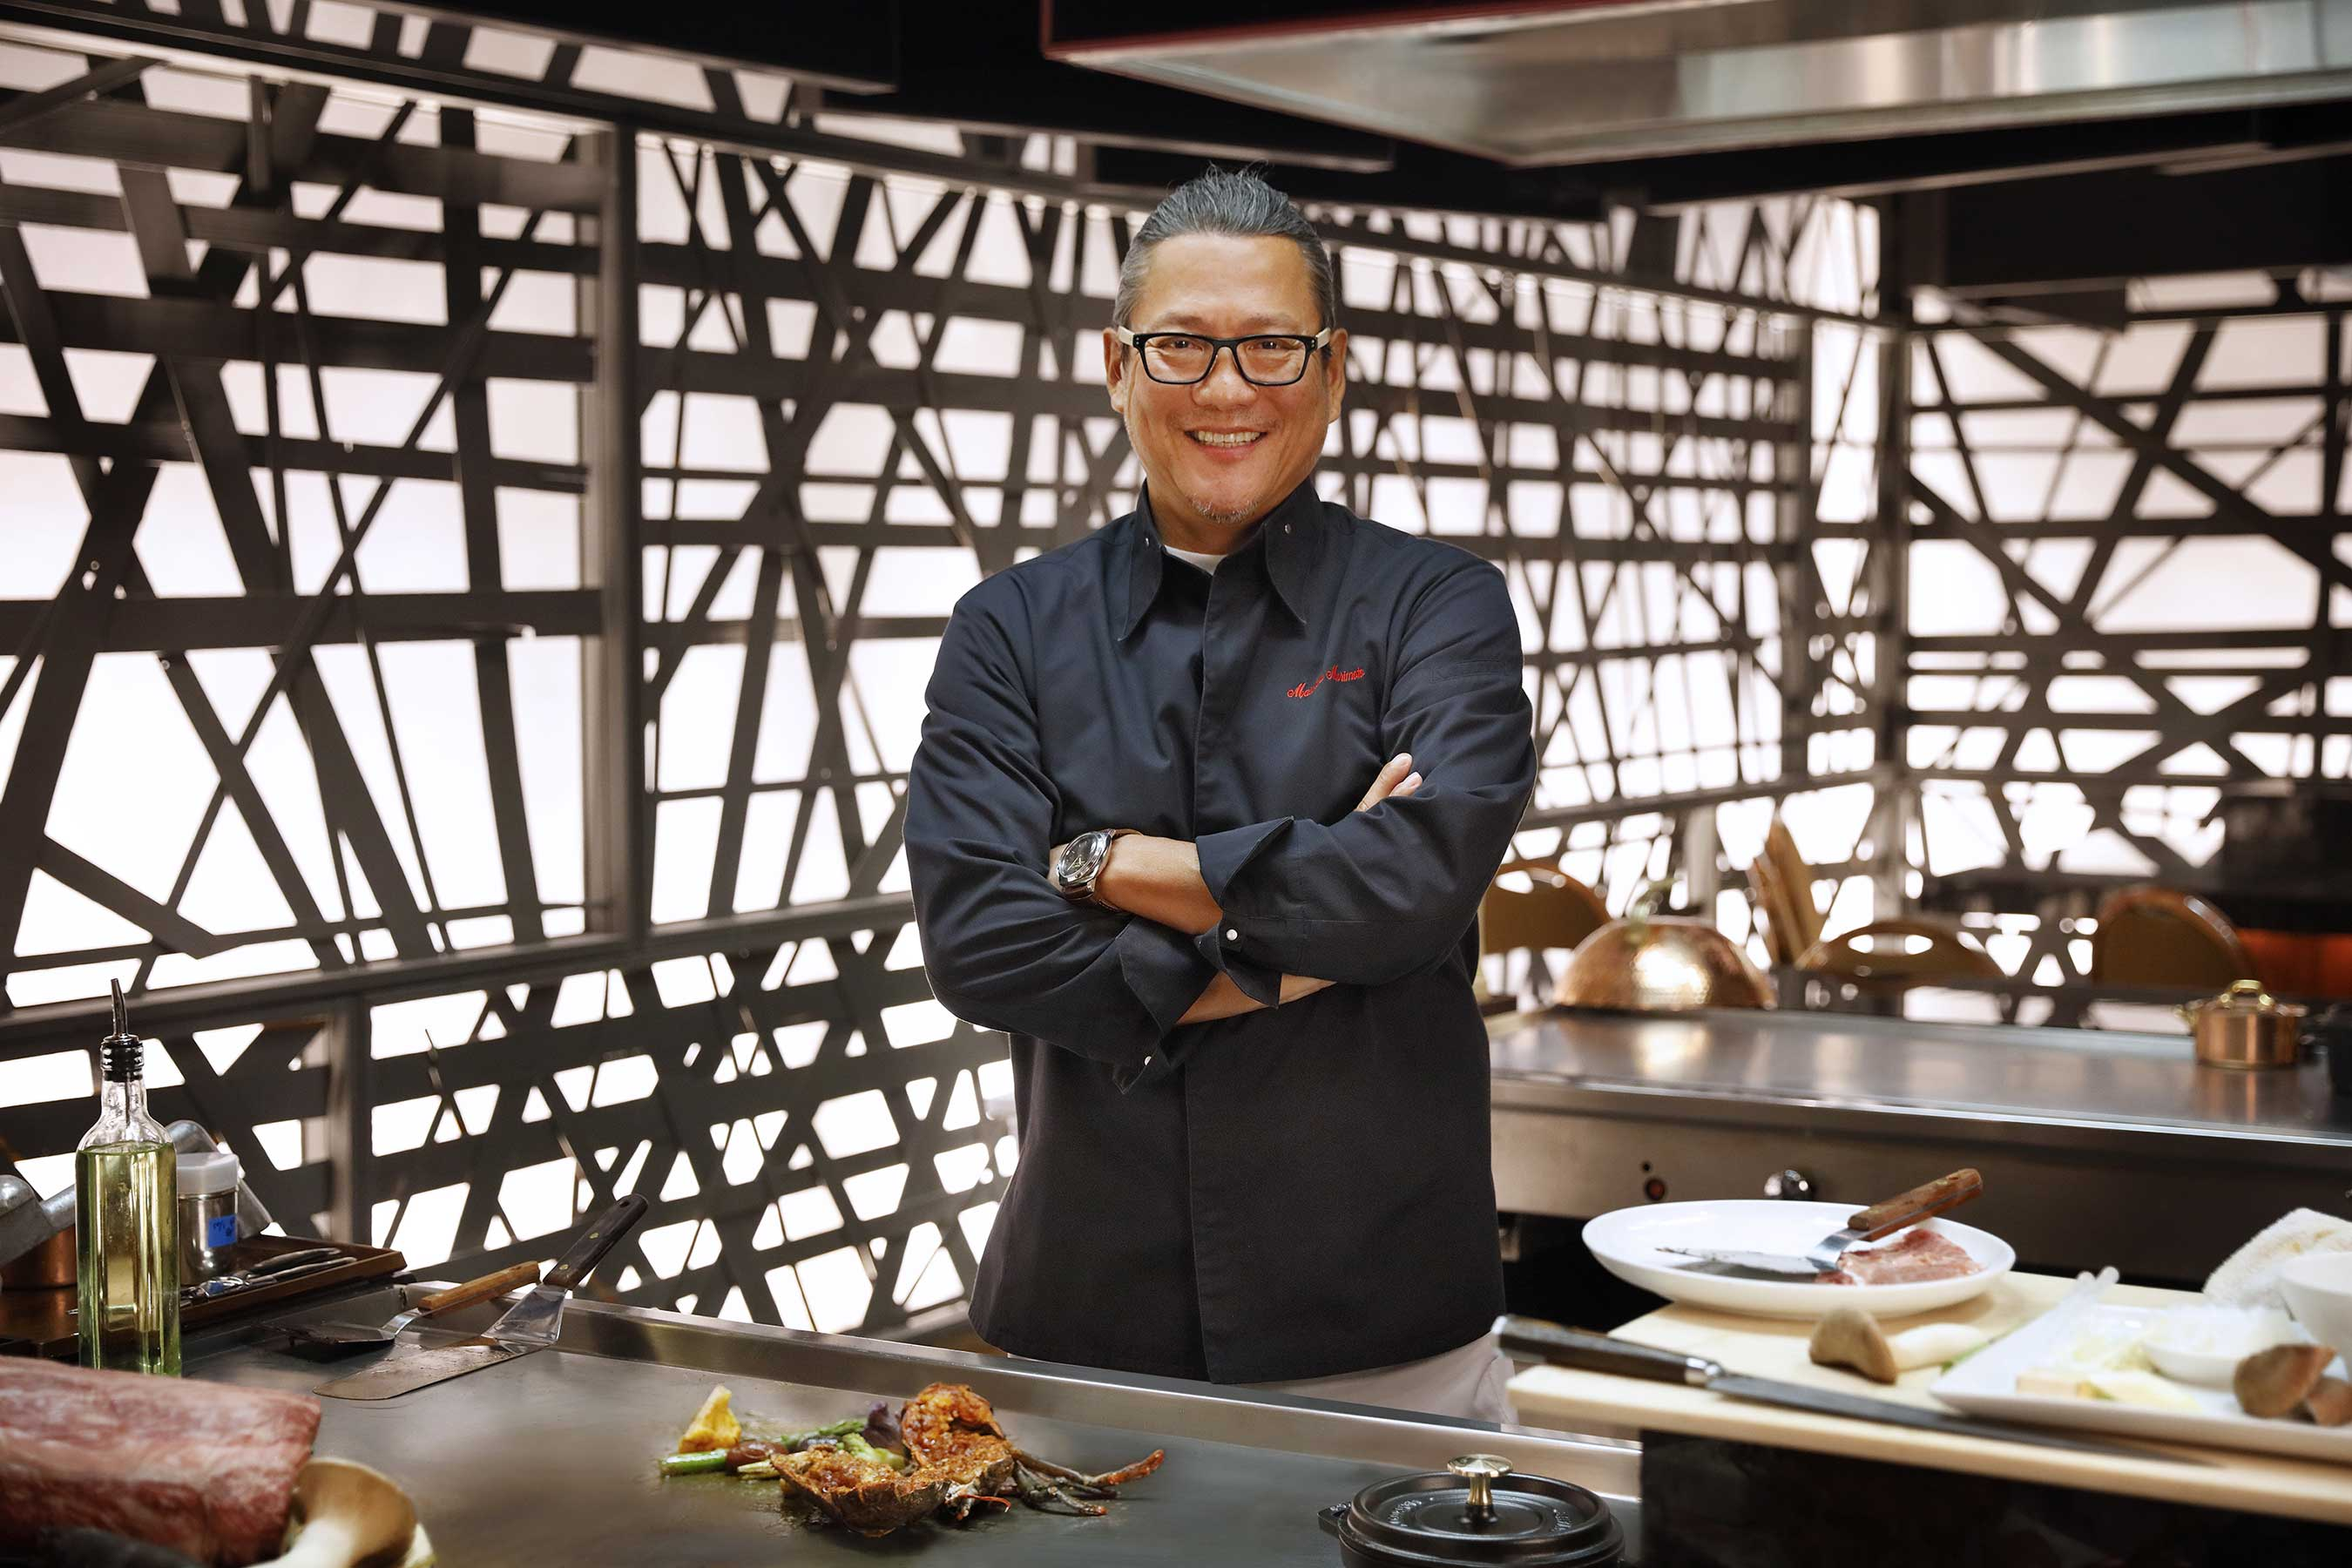 Chef Morimoto brings showmanship to Morimoto Las Vegas with his first Teppan table experience.